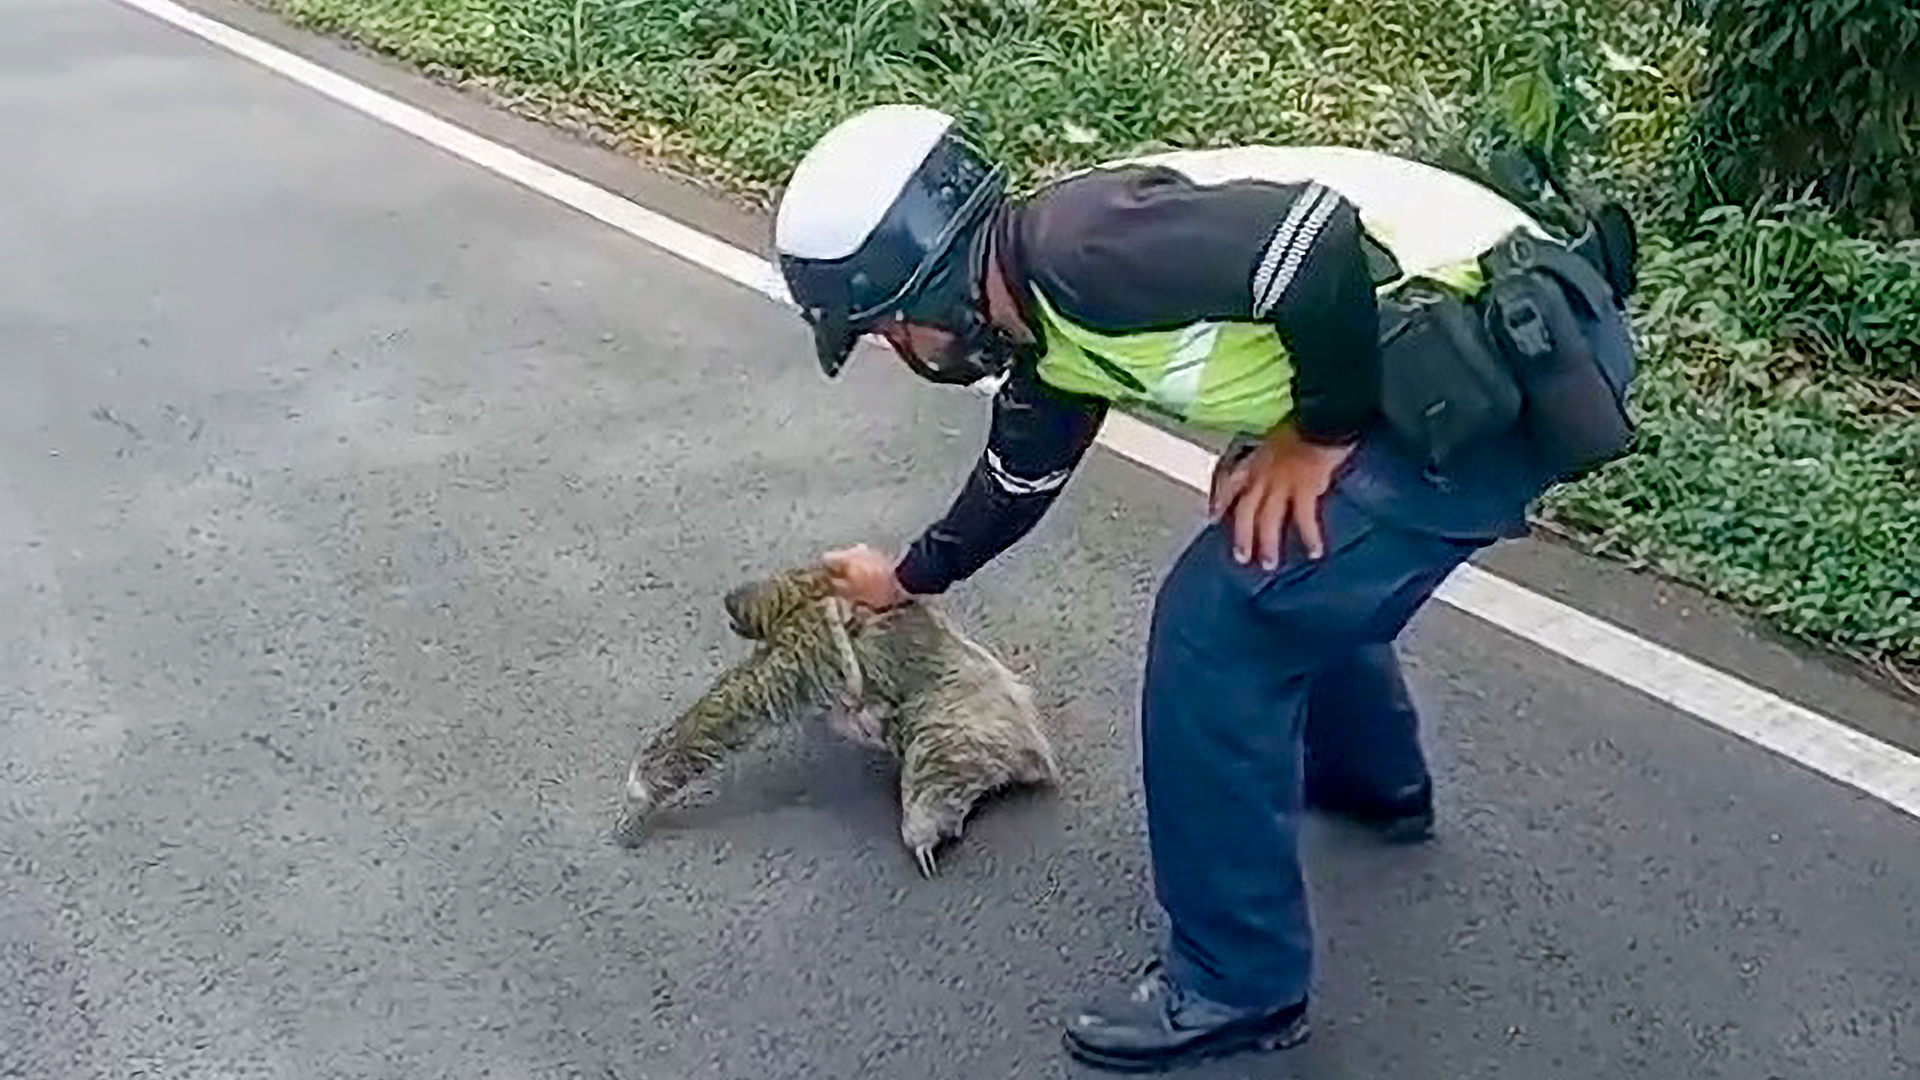 VIDEO: A Cop Rescues Slow-Moving Sloth From Middle Of Road - Zenger News